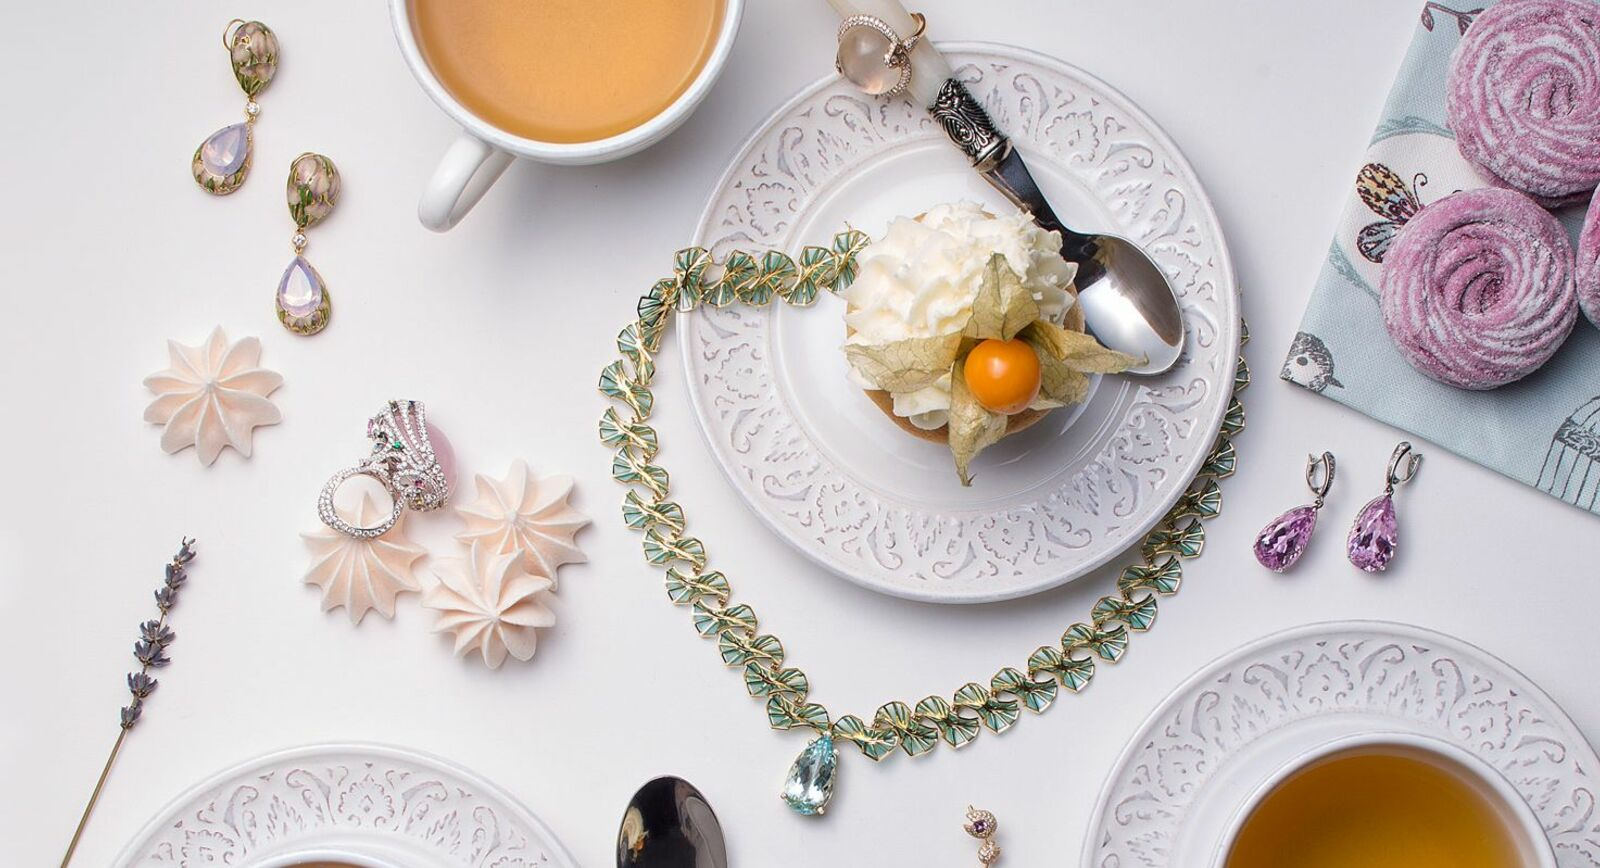 Jewellery Editorial: Bejewelled Tea Party – Part 1